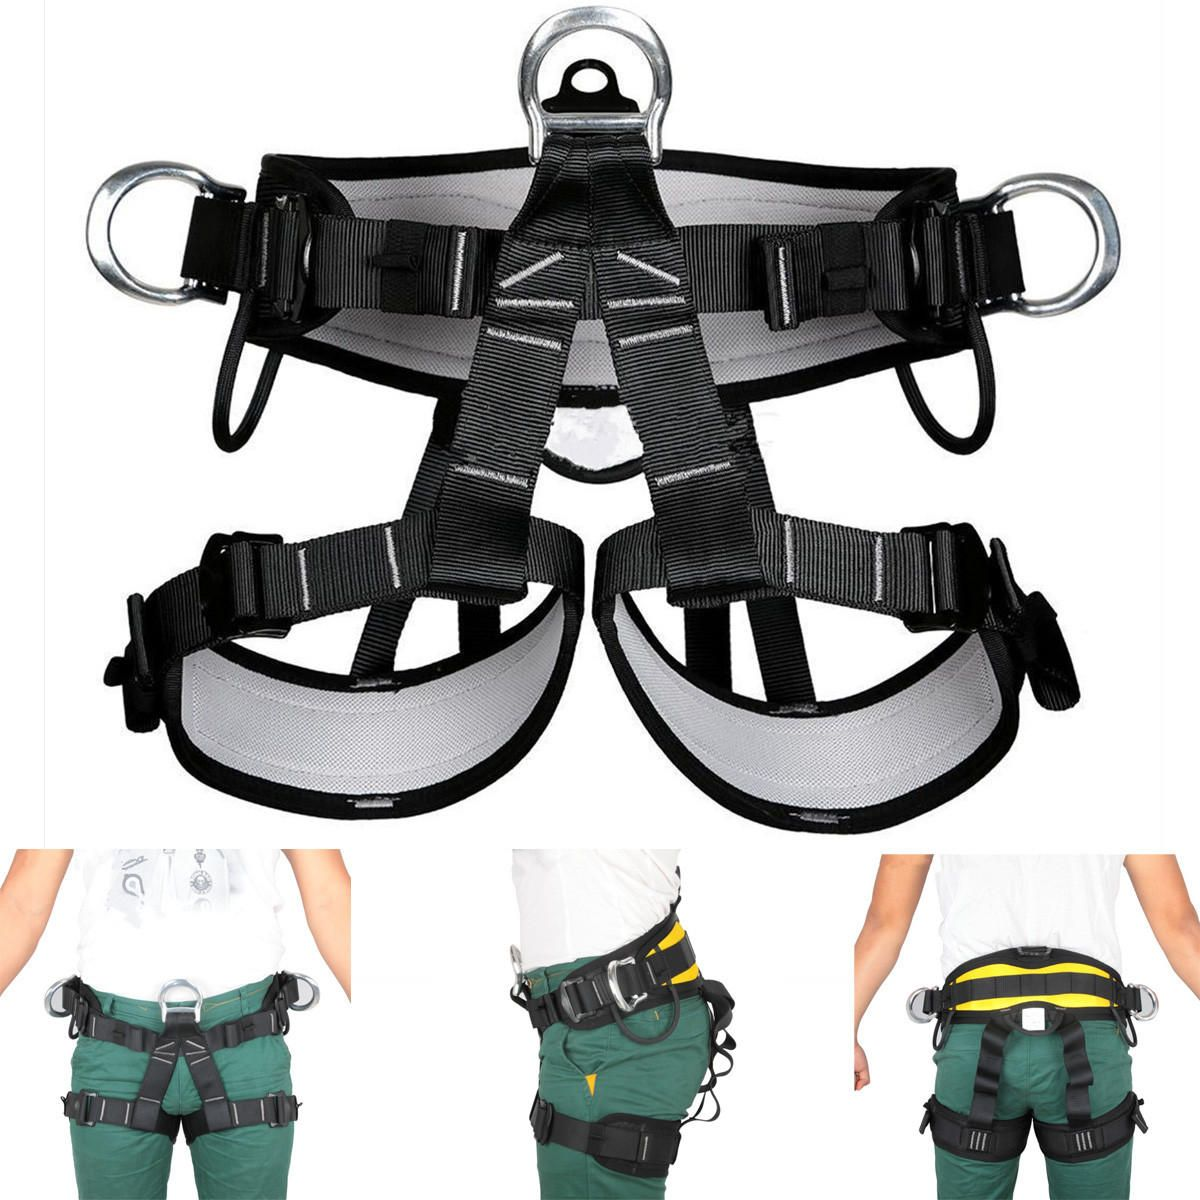 Pro Tree Carving Fall Protection Rock Climbing Equip Gear